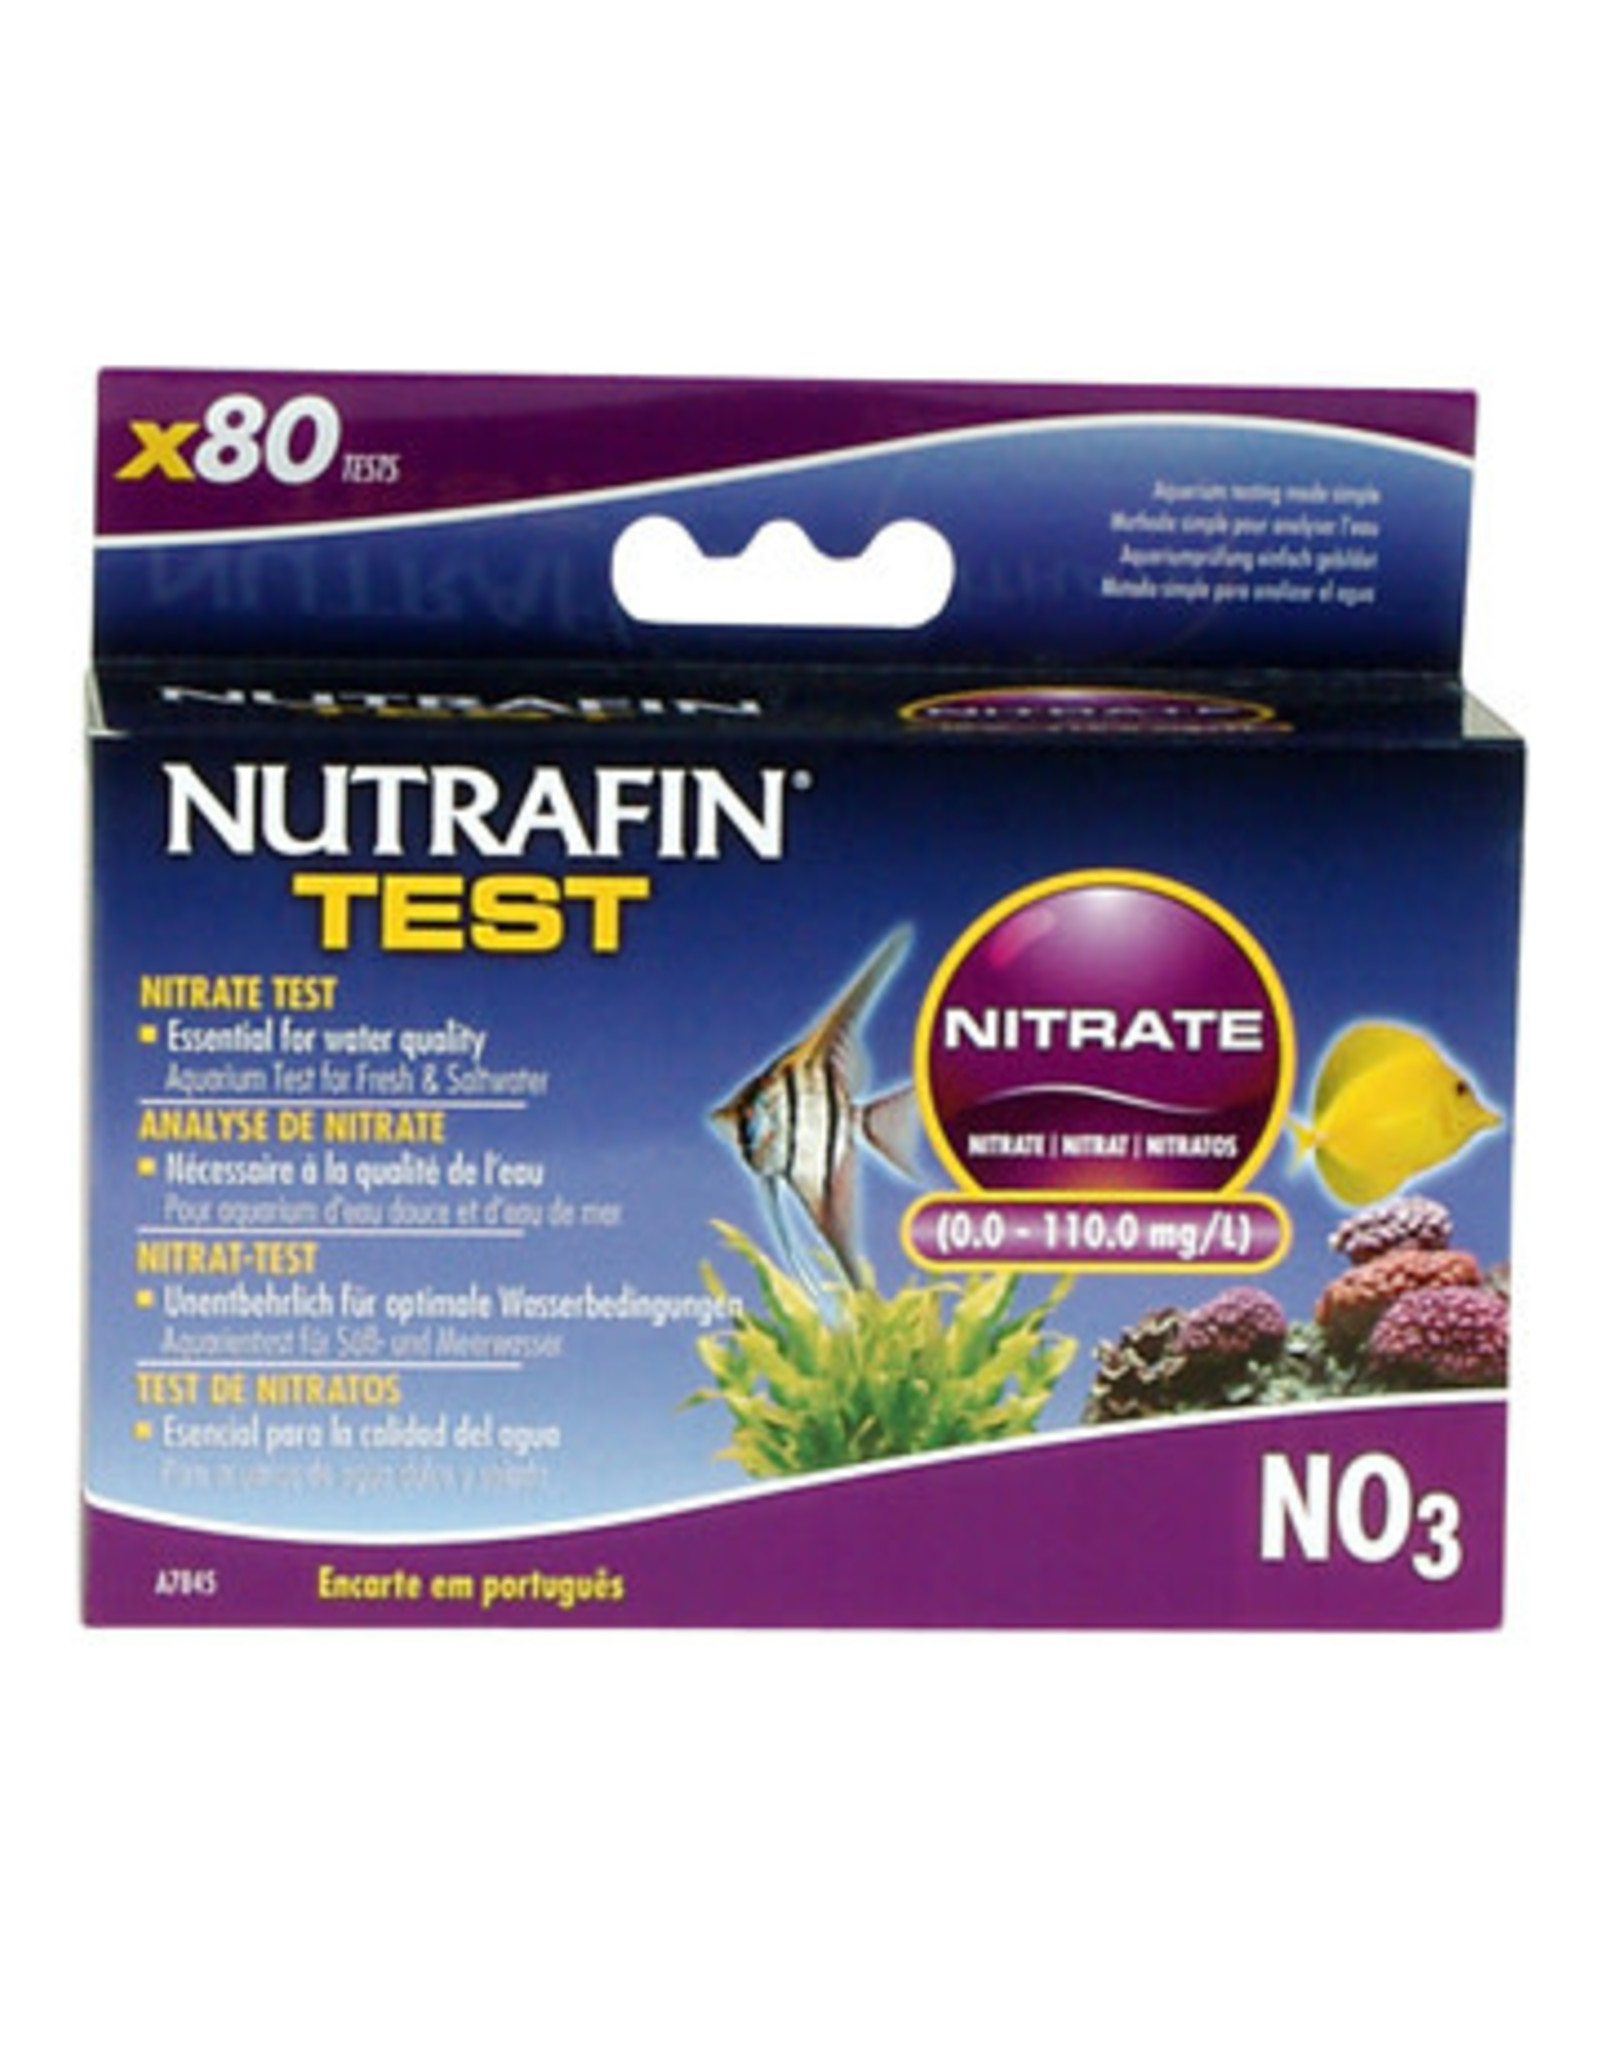 Nutrafin Nutrafin Nitrate Test (0.0 - 110.0 mg/L)